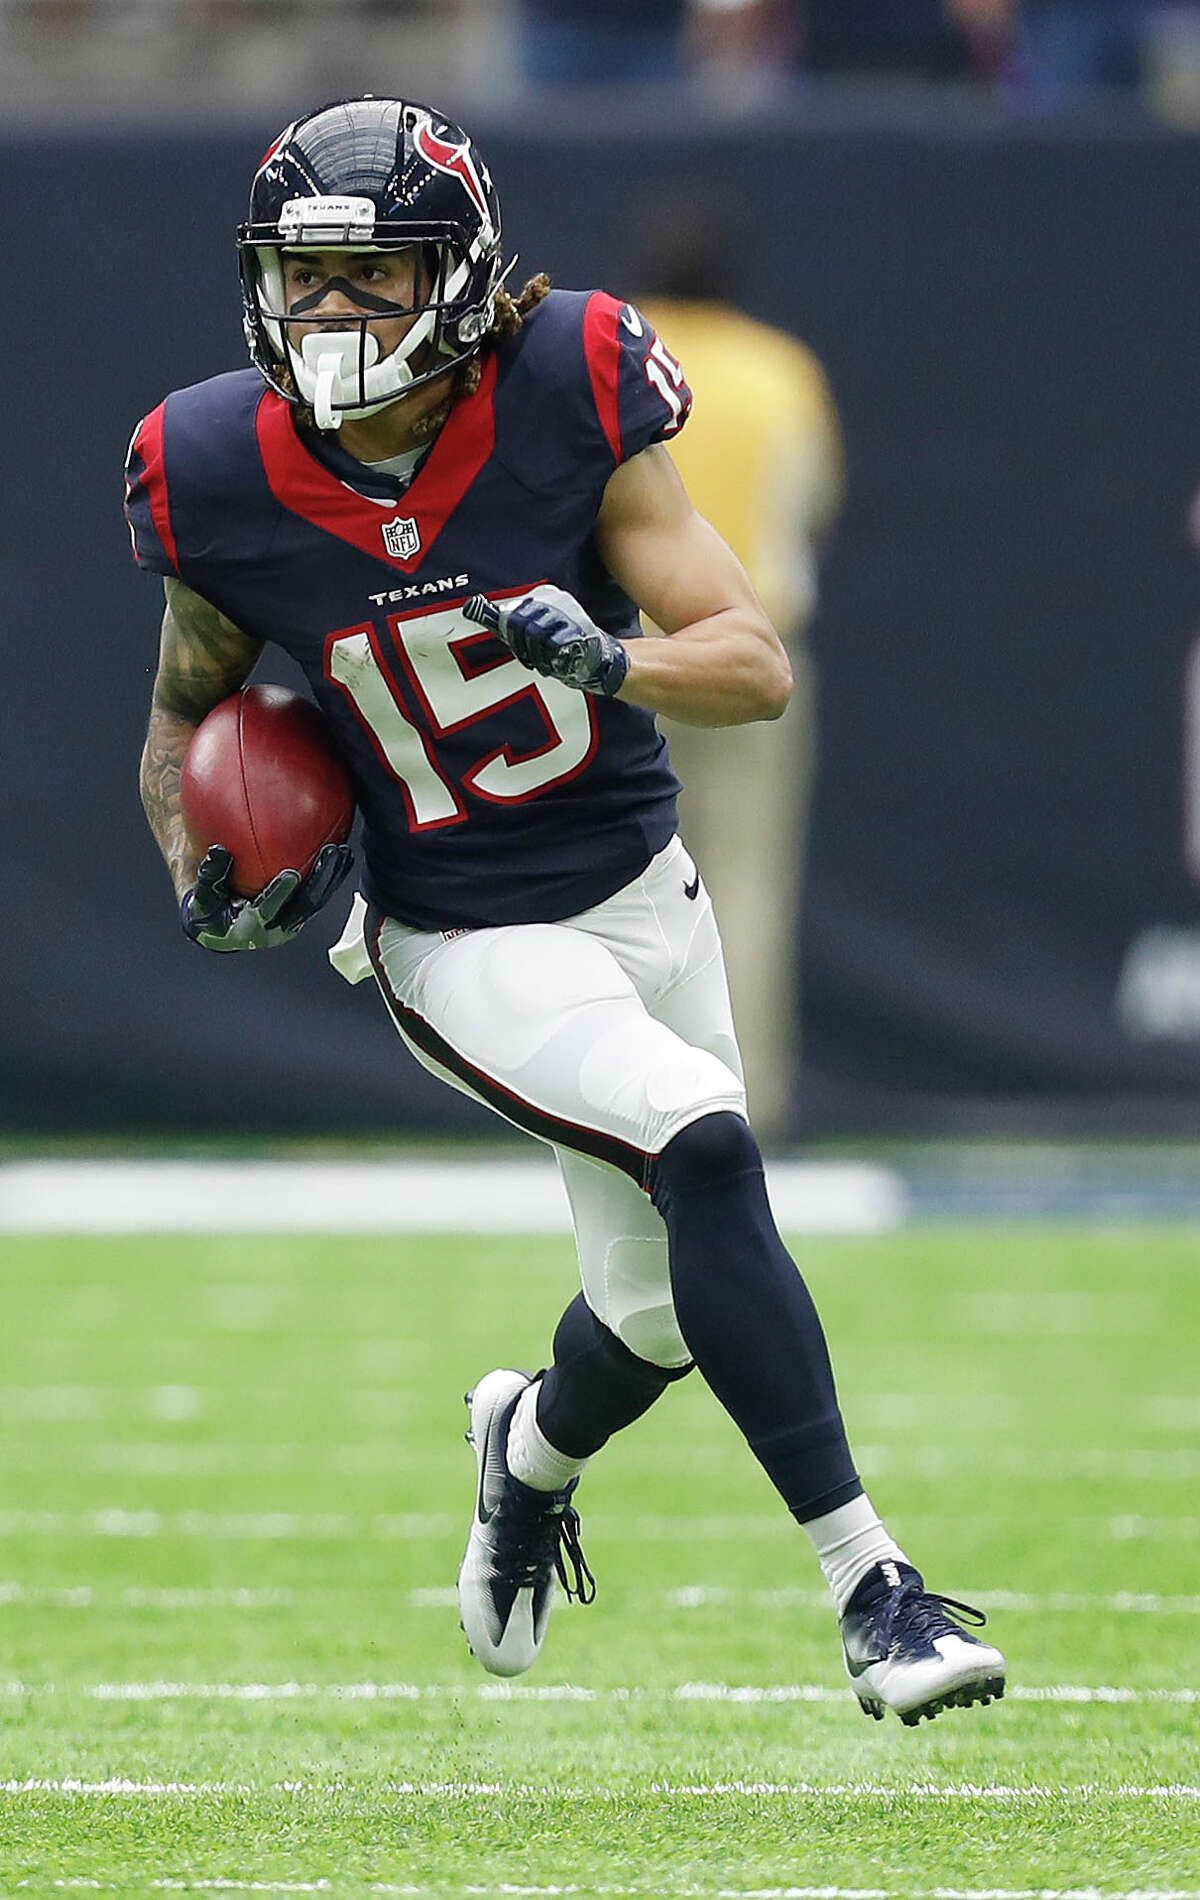 Houston Texans wide receiver Will Fuller (15) runs the ball for a 67-yard punt return for a touchdown during the third quarter of an NFL football game at NRG Stadium, Sunday, Oct. 2, 2016 in Houston.